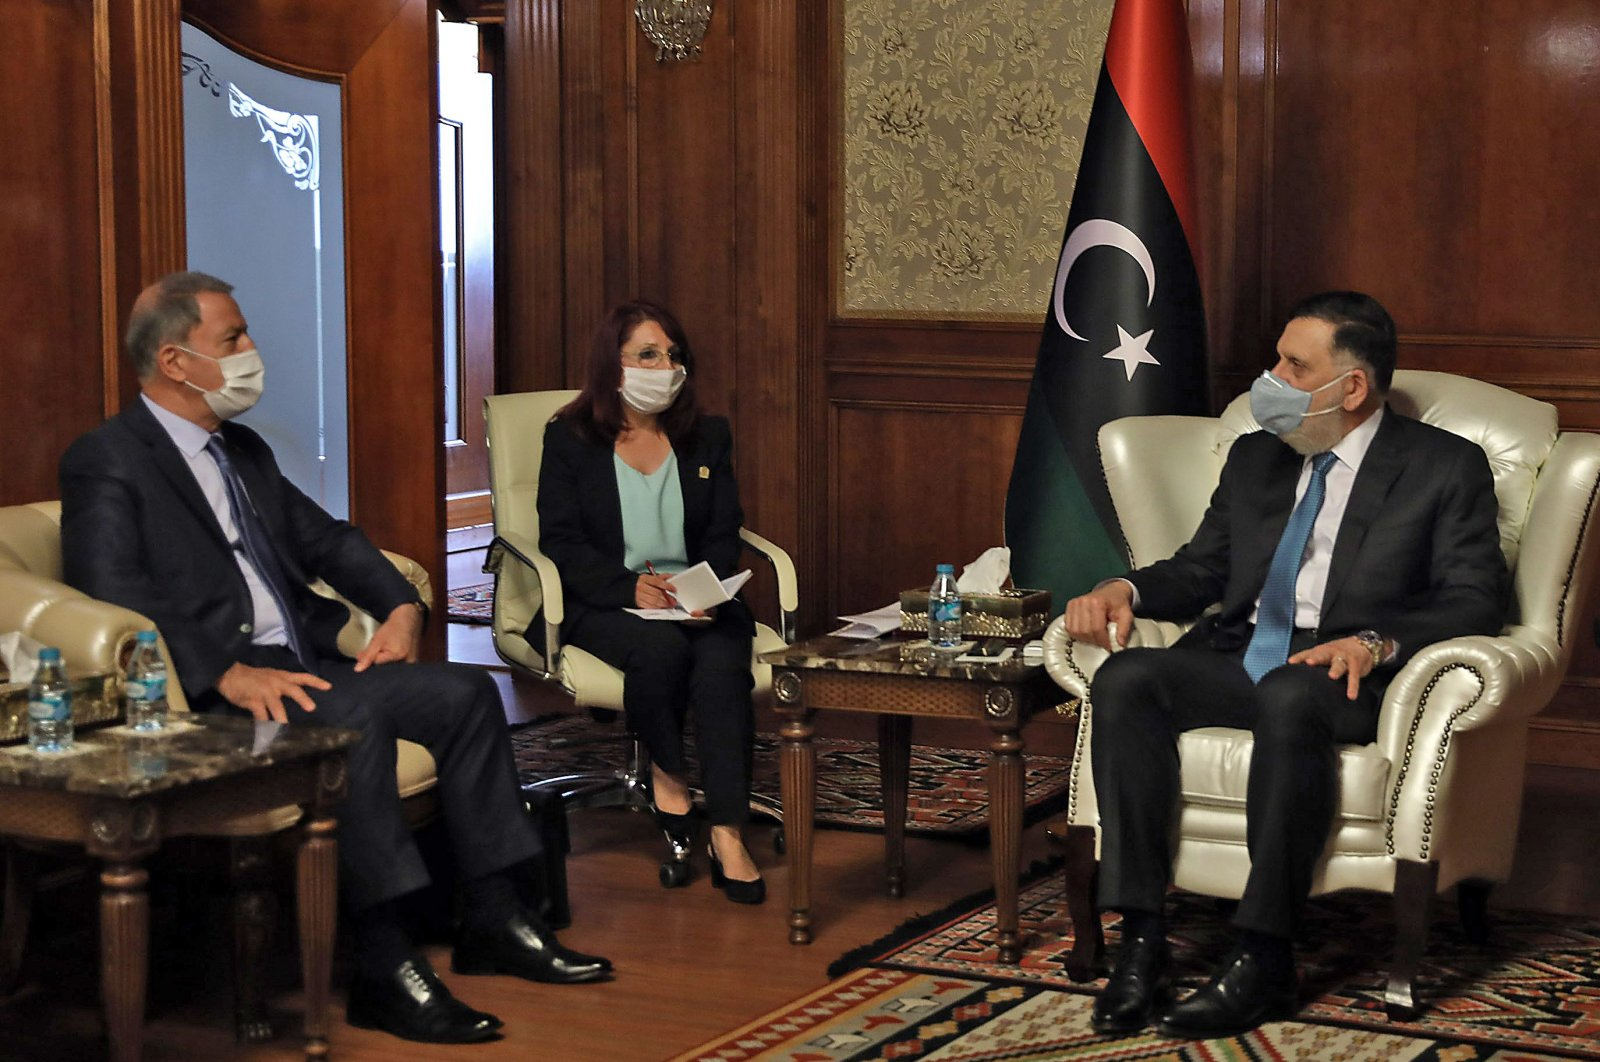 Fayez Sarraj (R), Prime Minister of Libya's U.N.-recognised Government of National Accord (GNA) receives Turkish Defense Minister Hulusi Akar (L), in the Libyan capital Tripoli, July 3, 2020. (AFP Photo)